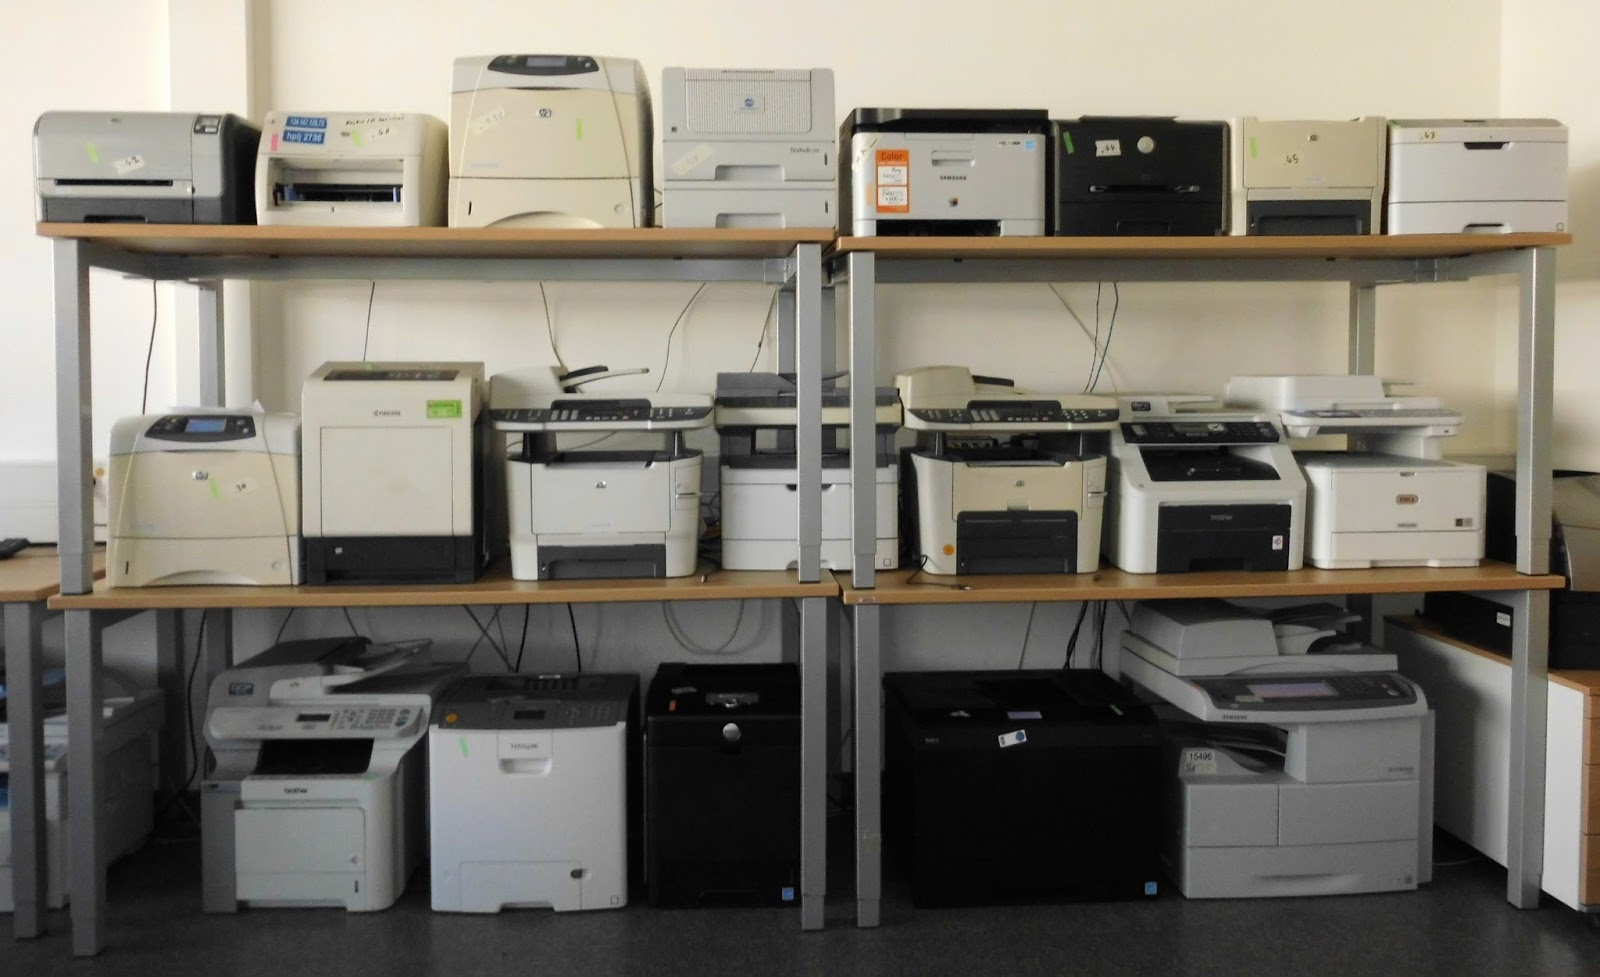 Printers tested by researchers